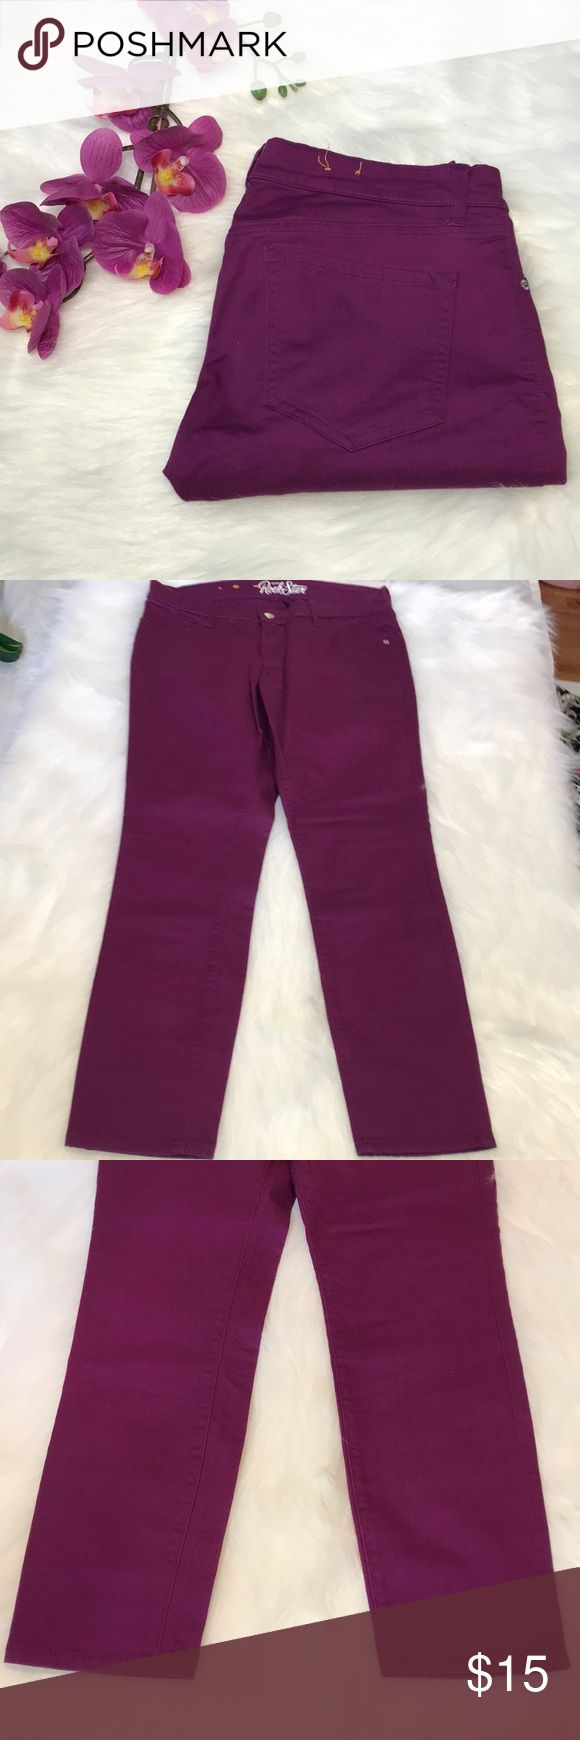 """NWOT OLD NAVY PURPLE ROCKSTAR JEANS SZ 12 NWOT OLD NAVY PURPLE ROCKSTAR JEANS SIZE 12. PERFECT CONDITION..,, INSEAM 29"""" WAIST 32"""" FABRIC IS STRETCHY Old Navy Jeans Skinny"""